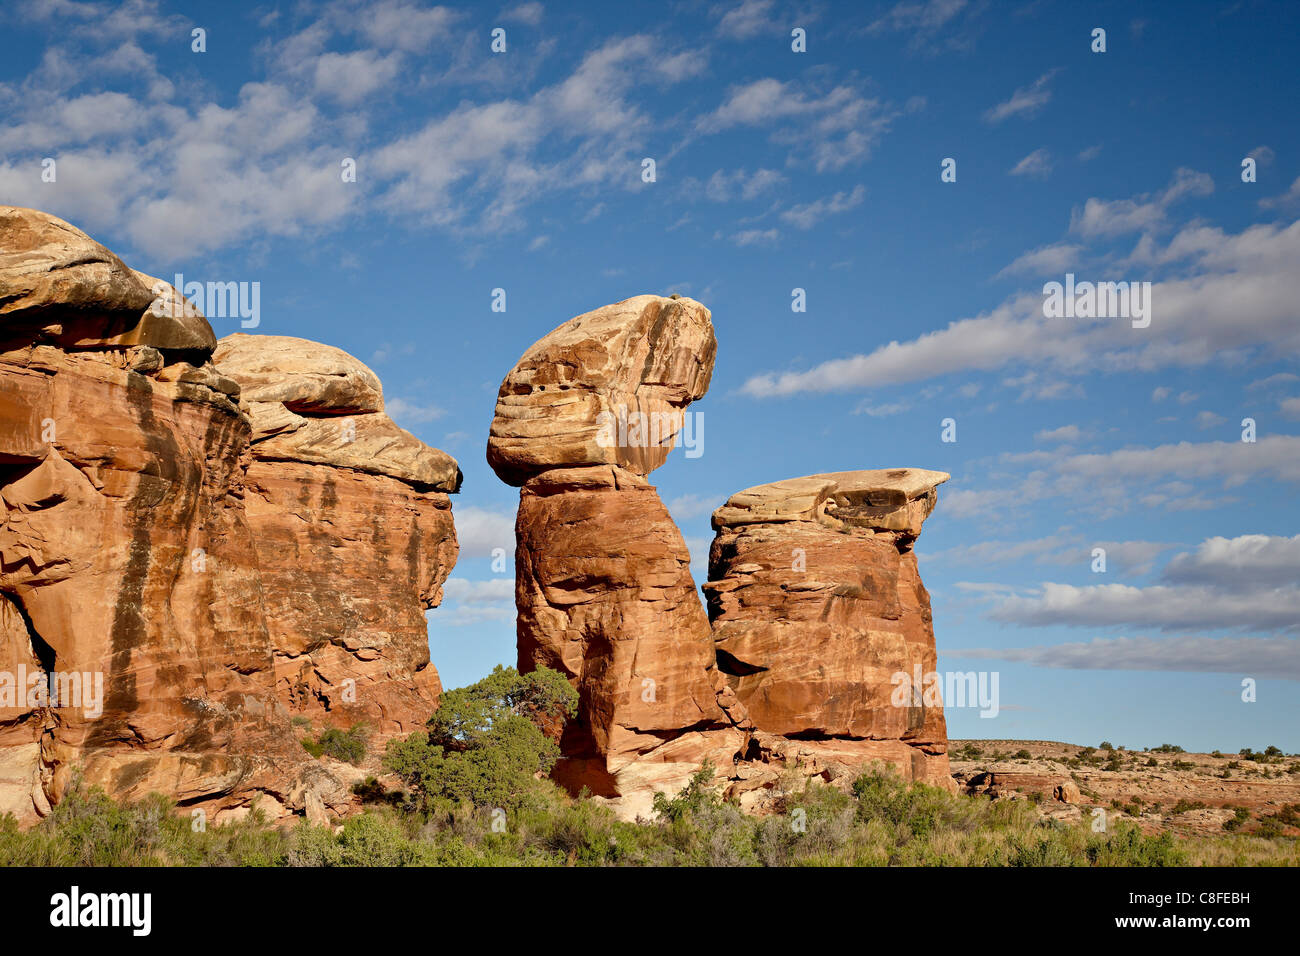 Rock formation with clouds, The Needles District, Canyonlands National Park, Utah, United States of America - Stock Image